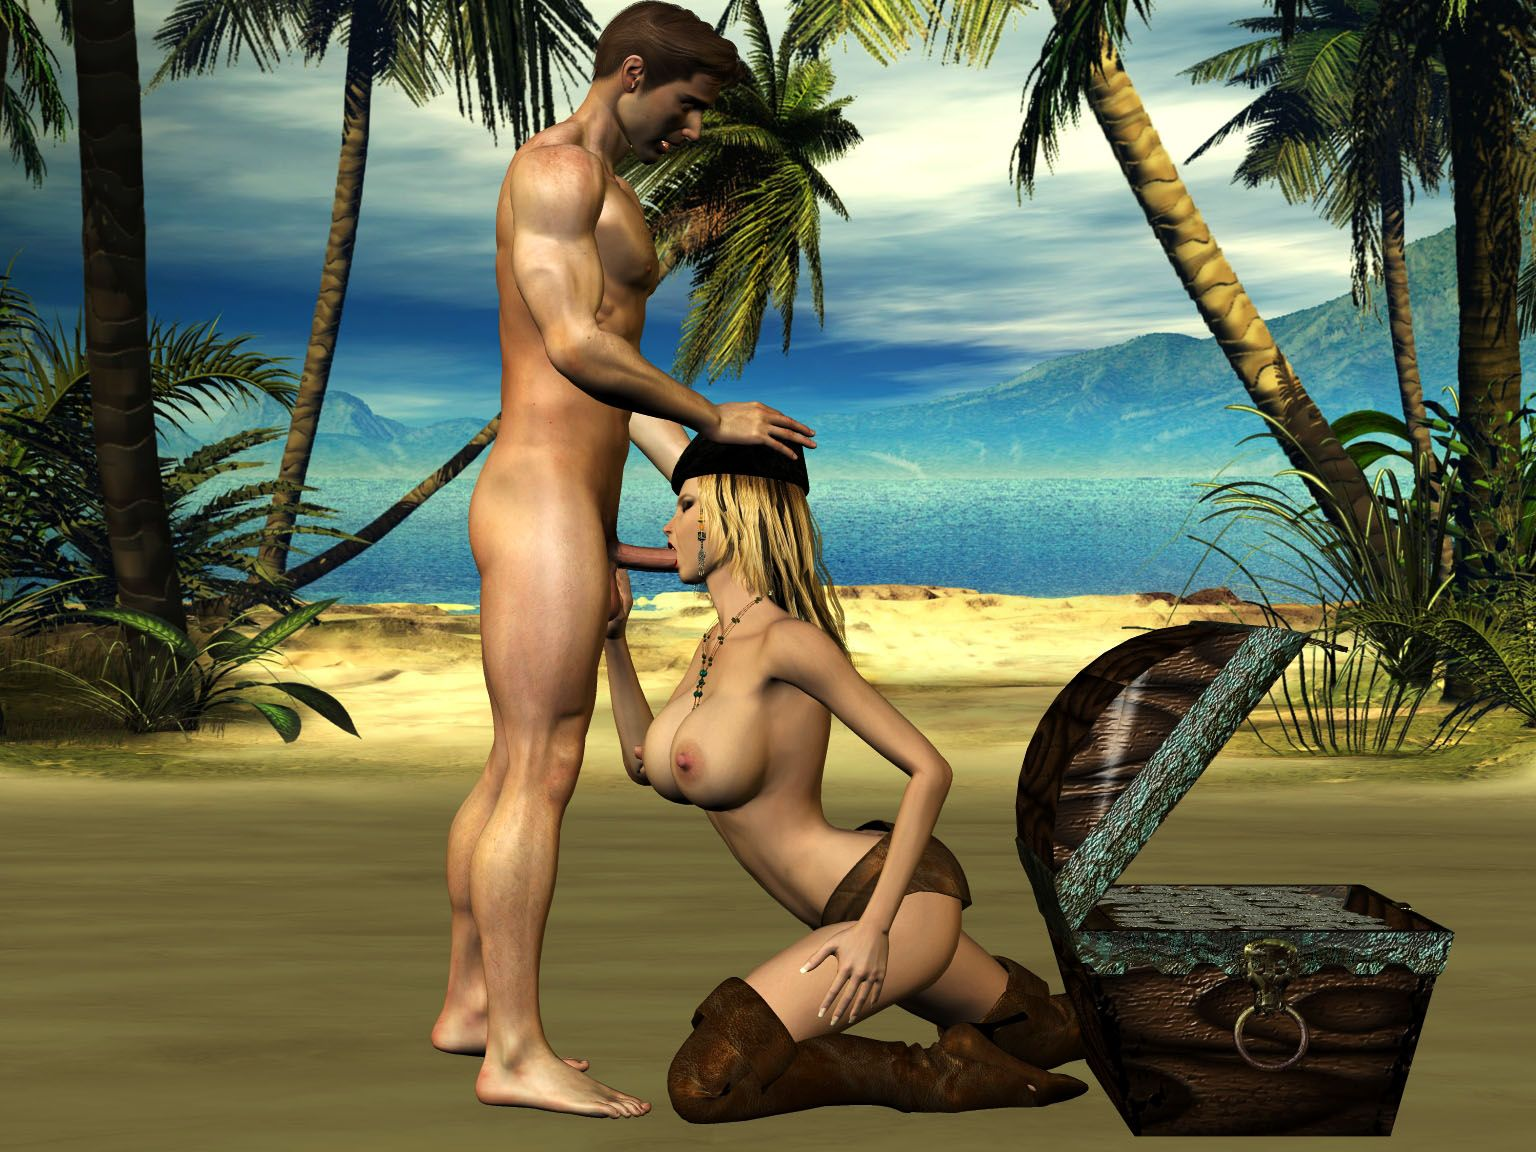 Naked pirate girl image hentia comics